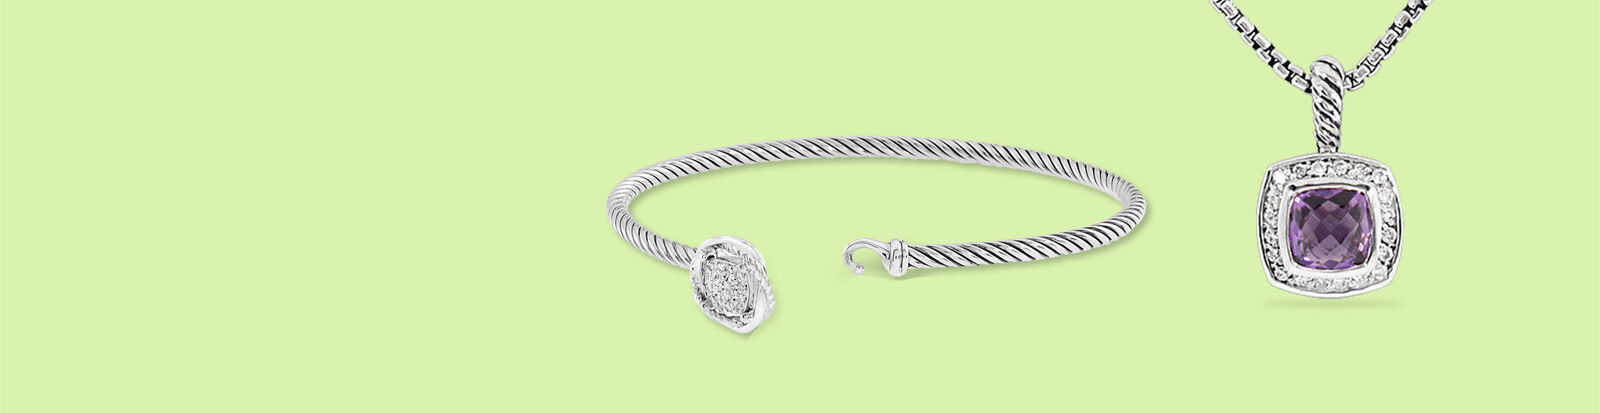 Up to 30% Off David Yurman Jewelry. Save now.